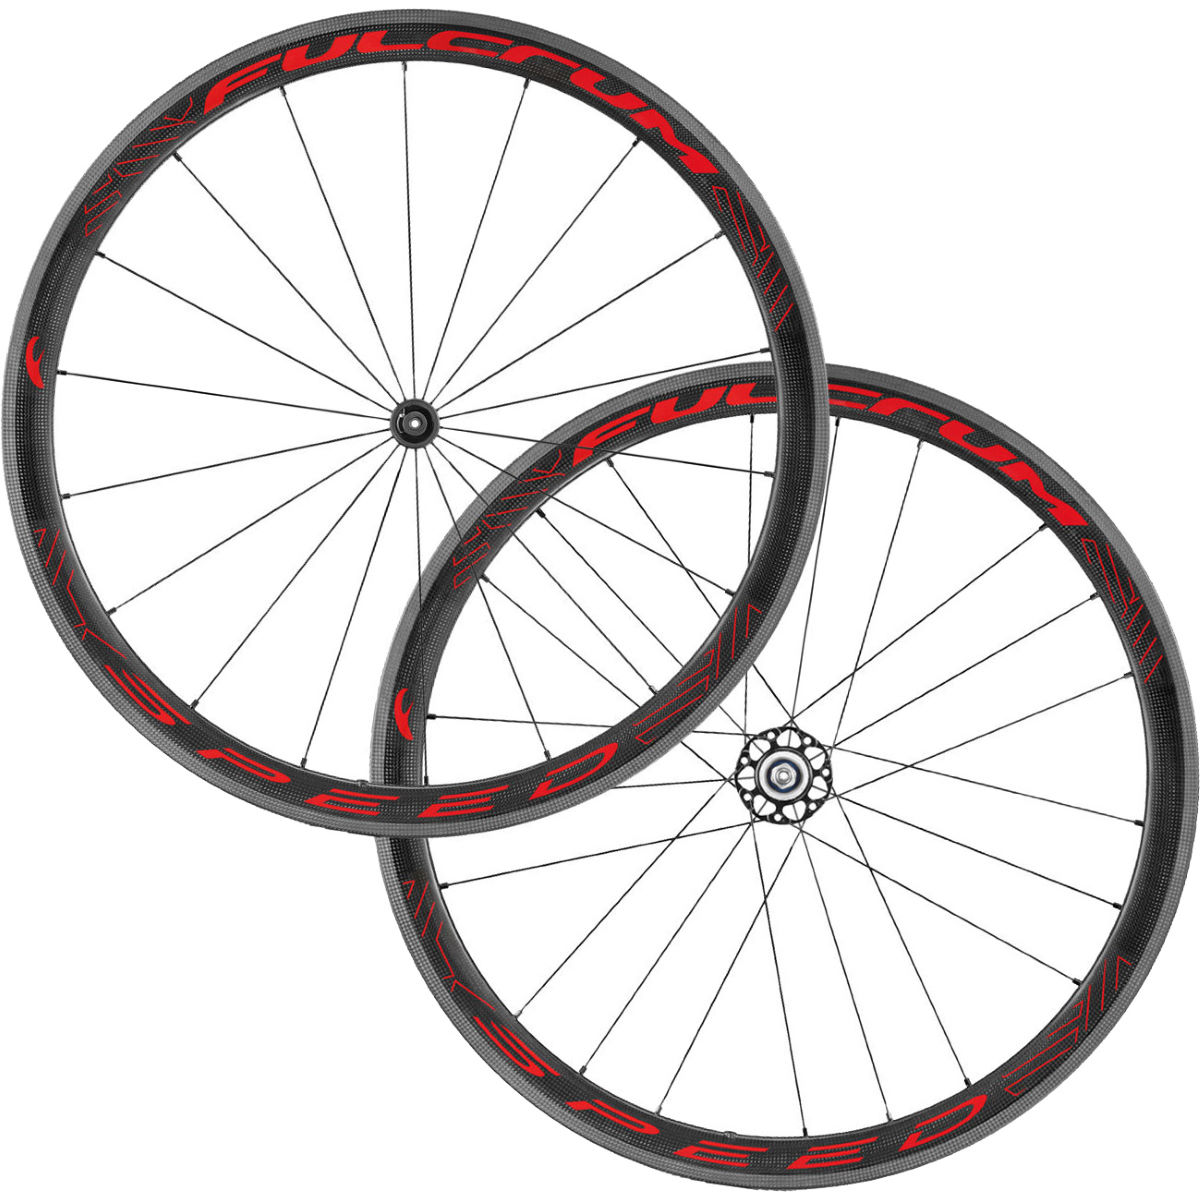 Fulcrum SPEED 40C Carbon Clincher Wheelset - 700c Shimano/SRAM Carbon / Red Roues performance